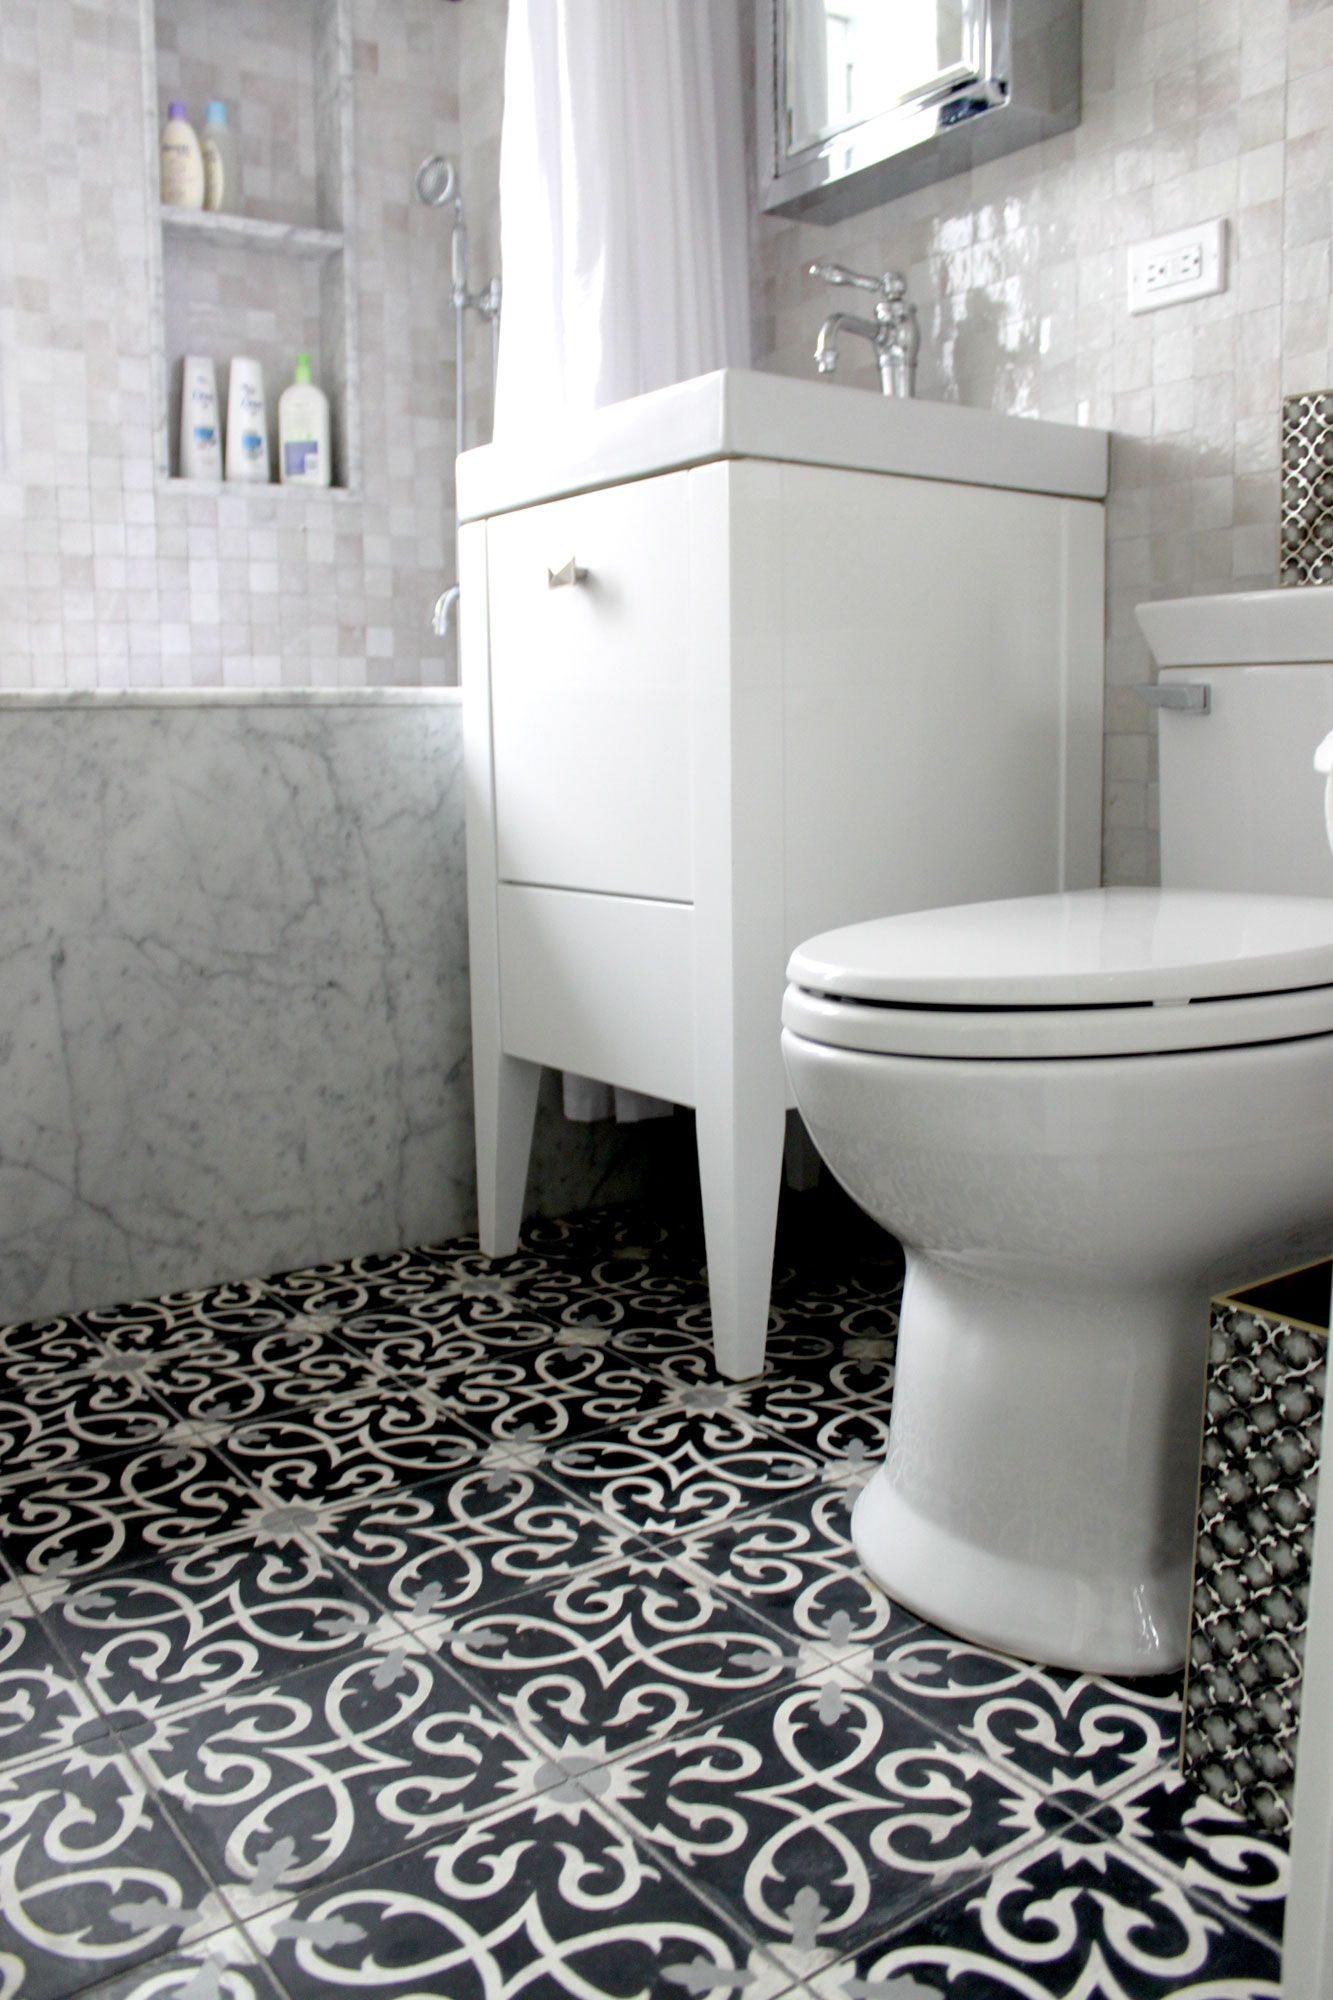 Moroccan Bathroom Tile Guest Bathroom Flooring Wet Room Lucifer C4 14 24 Moroccan